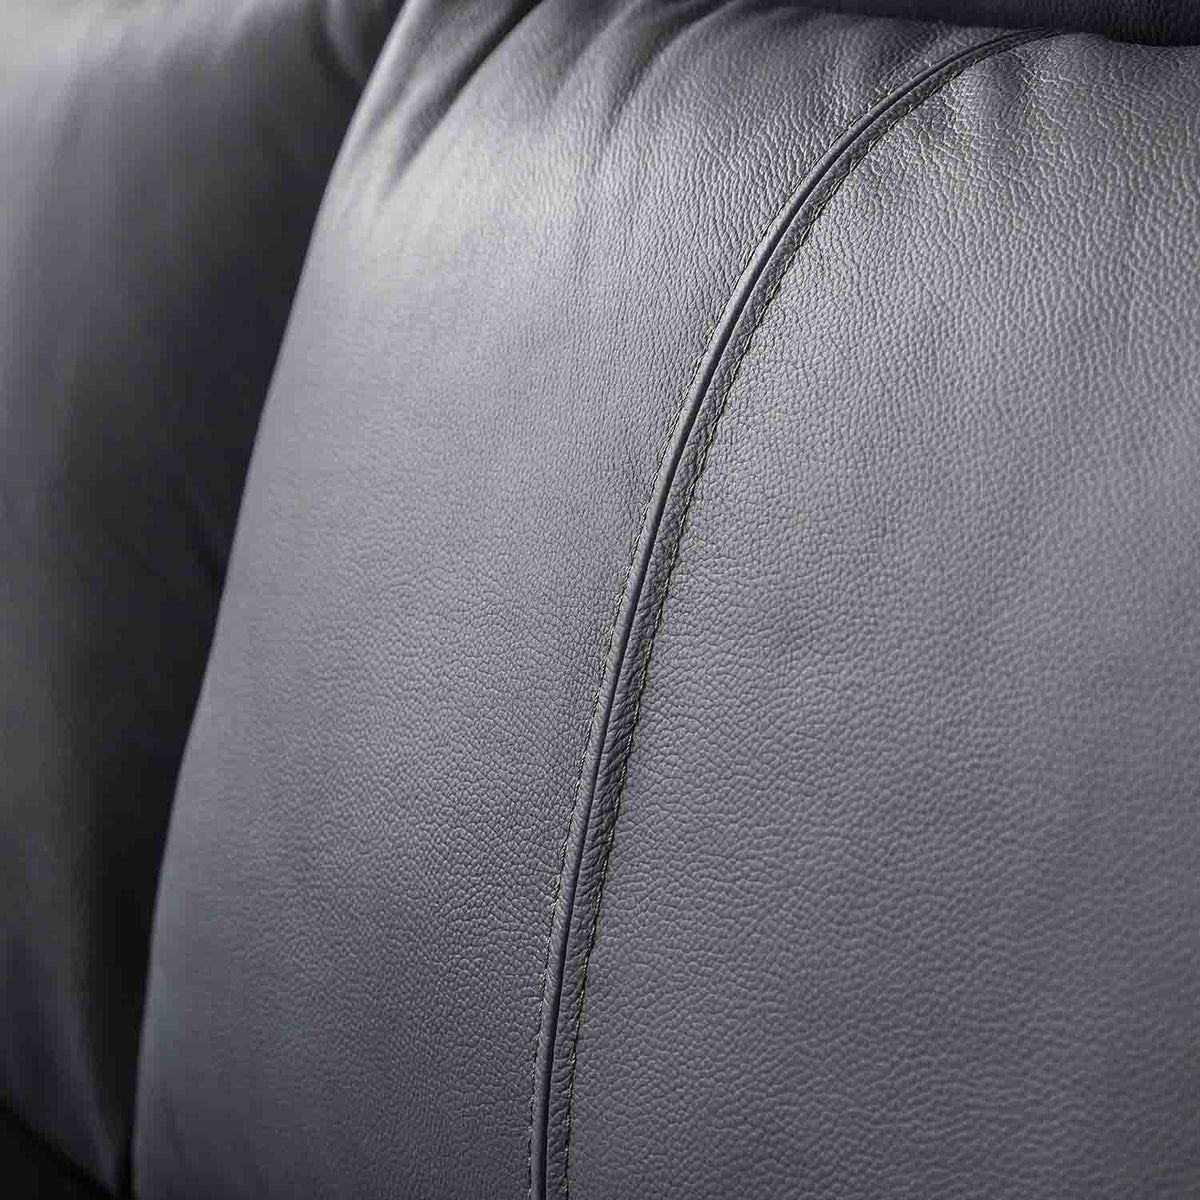 Hugo Grey 3 Seater Leather Sofa - Close up of back cushion on sofa